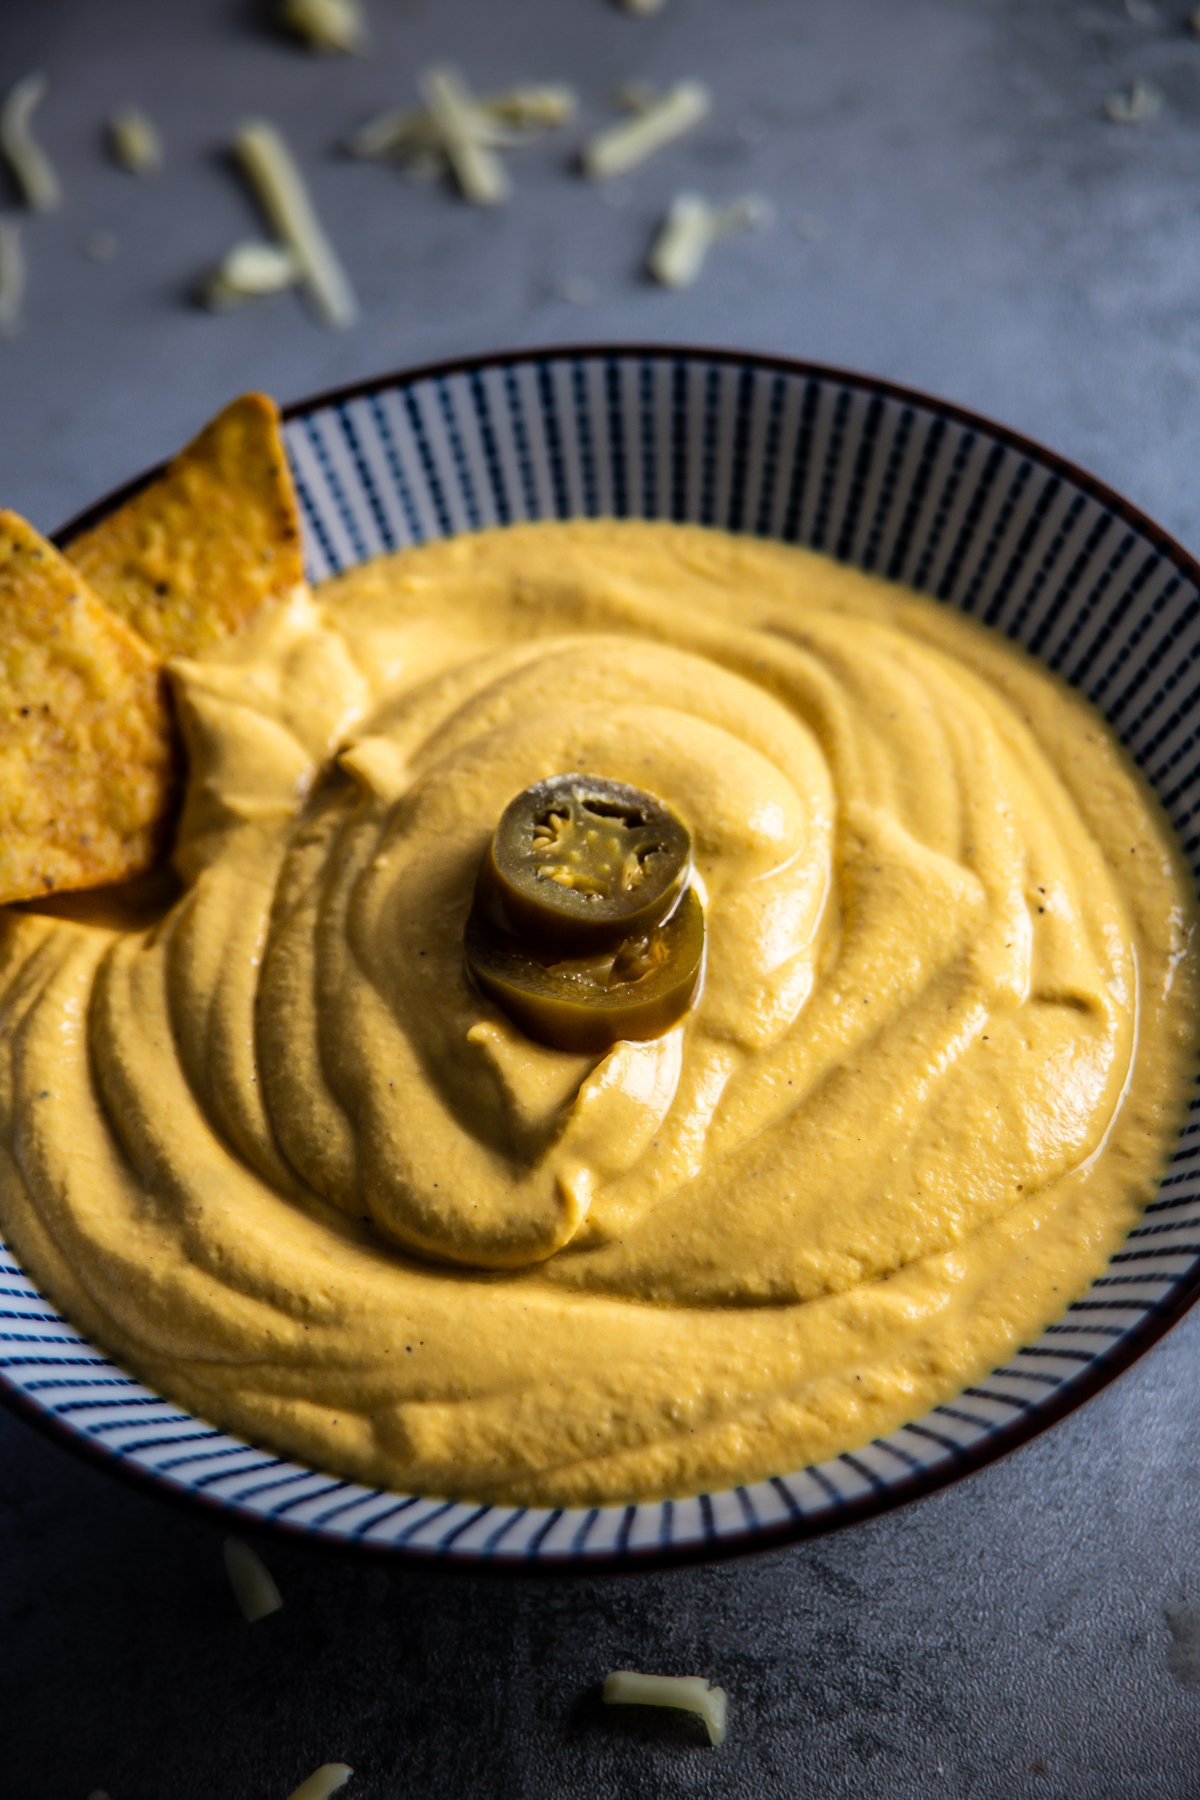 Vegan Cheese Sauce in a bowl on a grey background with nachos, jalapenos, and cheese strewn around photographed up close